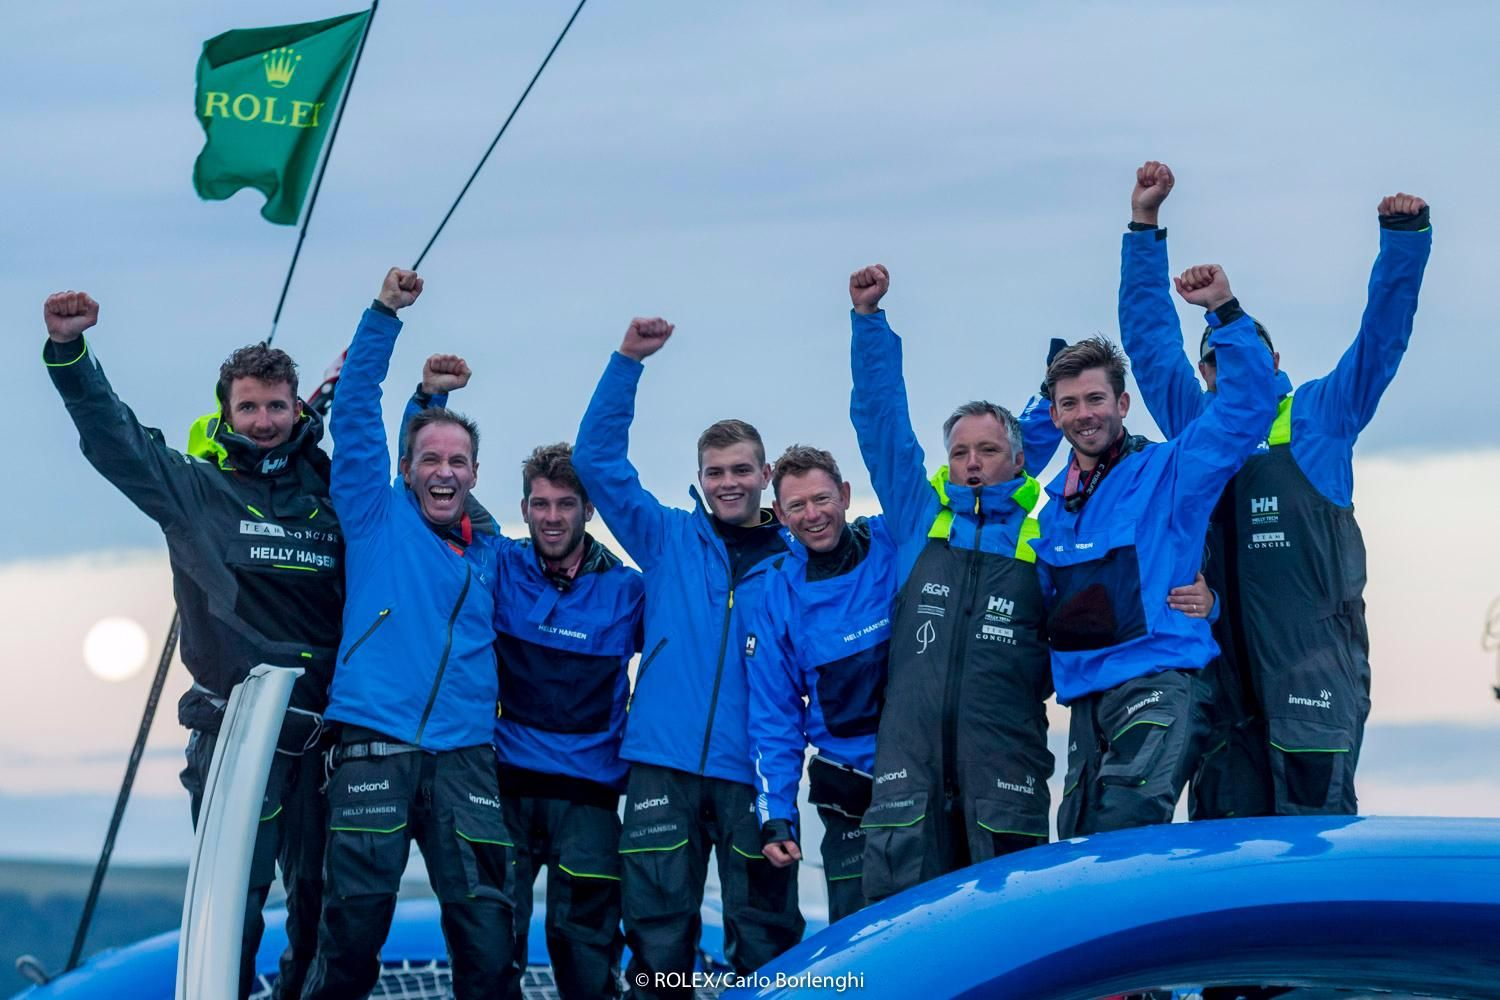 The crew of Concise 10, the MOD70, celebrate at the finish of the Rolex Fastnet Race. Credit: ROLEX/Carlo Borlenghi